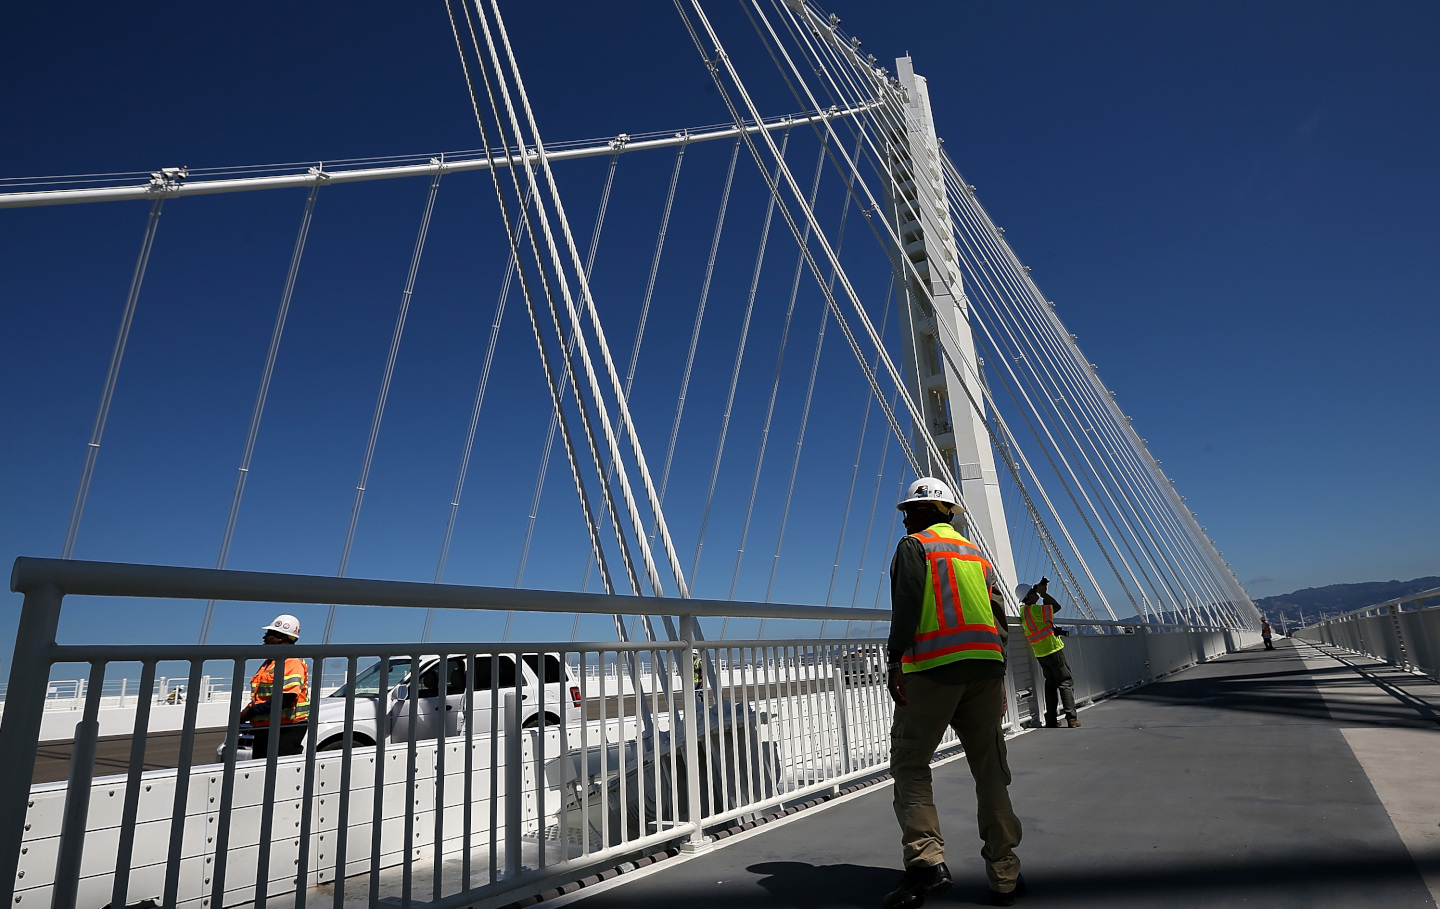 Construction Continues On Bay Bridge Ahead Of Opening Of Eastern Span